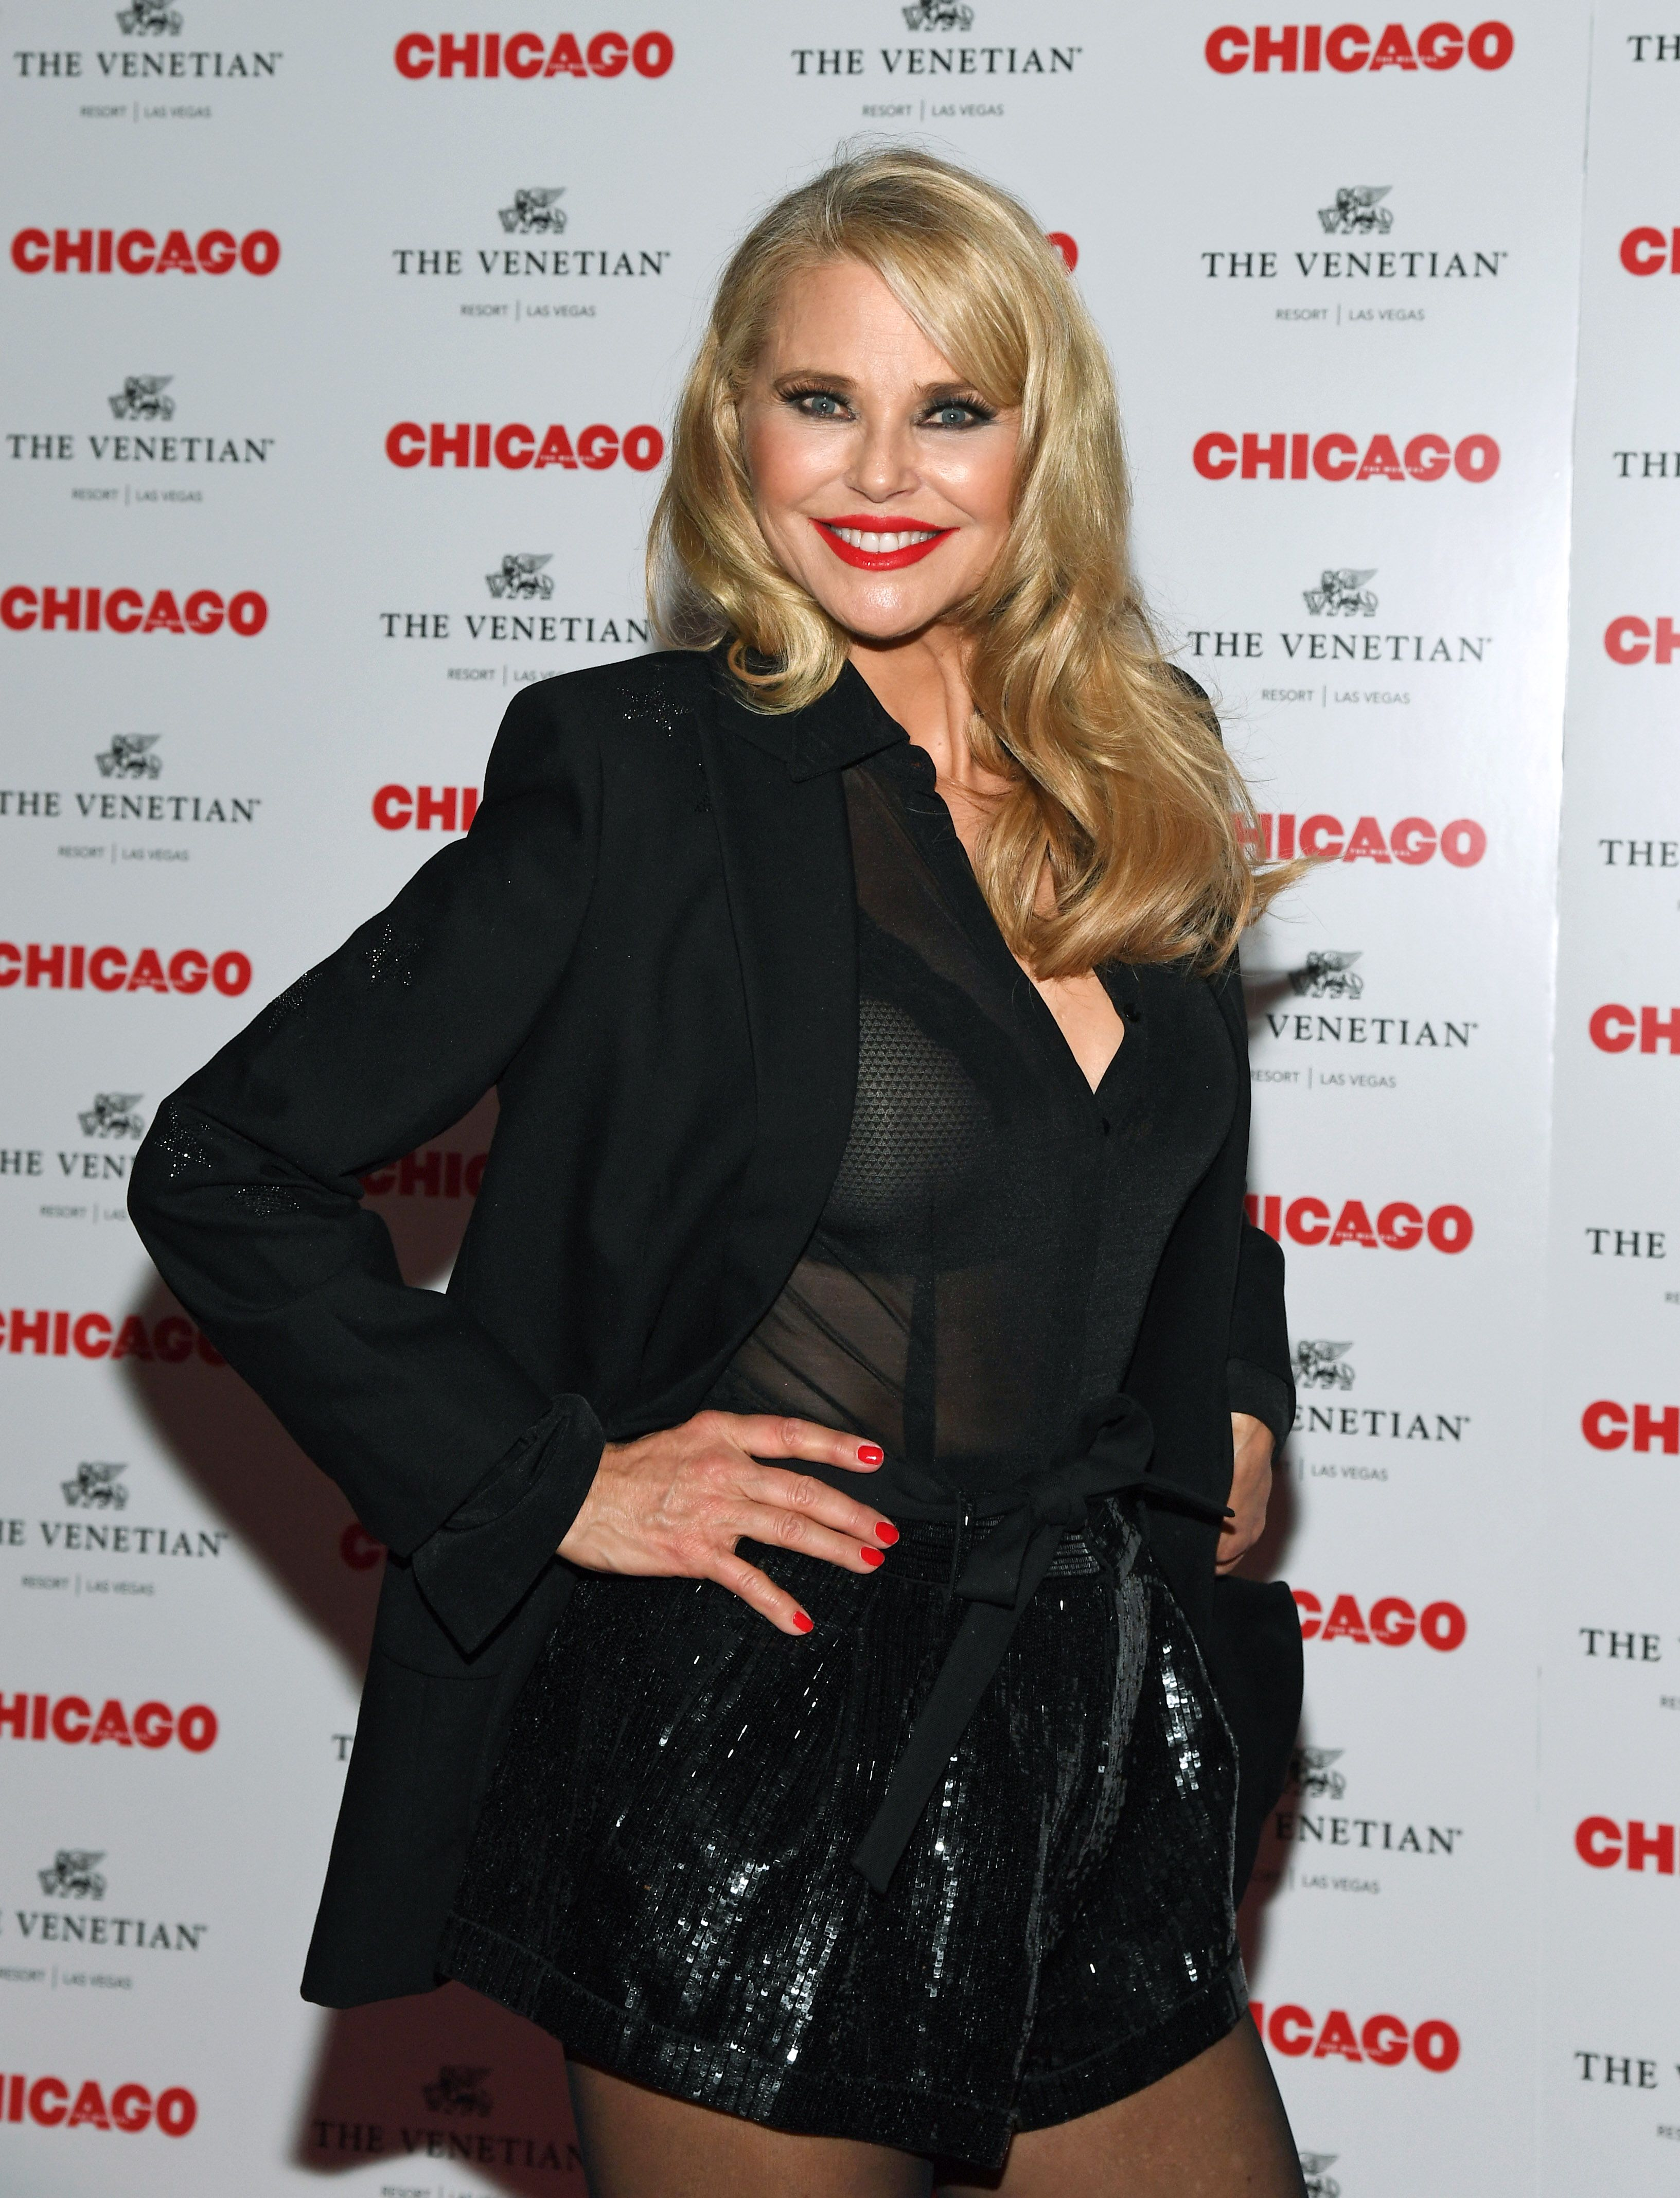 "Christie Brinkley attends a reception at Chica restaurant after the opening night of a limited engagement of the musical ""Chicago"" at The Venetian Las Vegas on April 10, 2019 in Las Vegas, Nevada. 